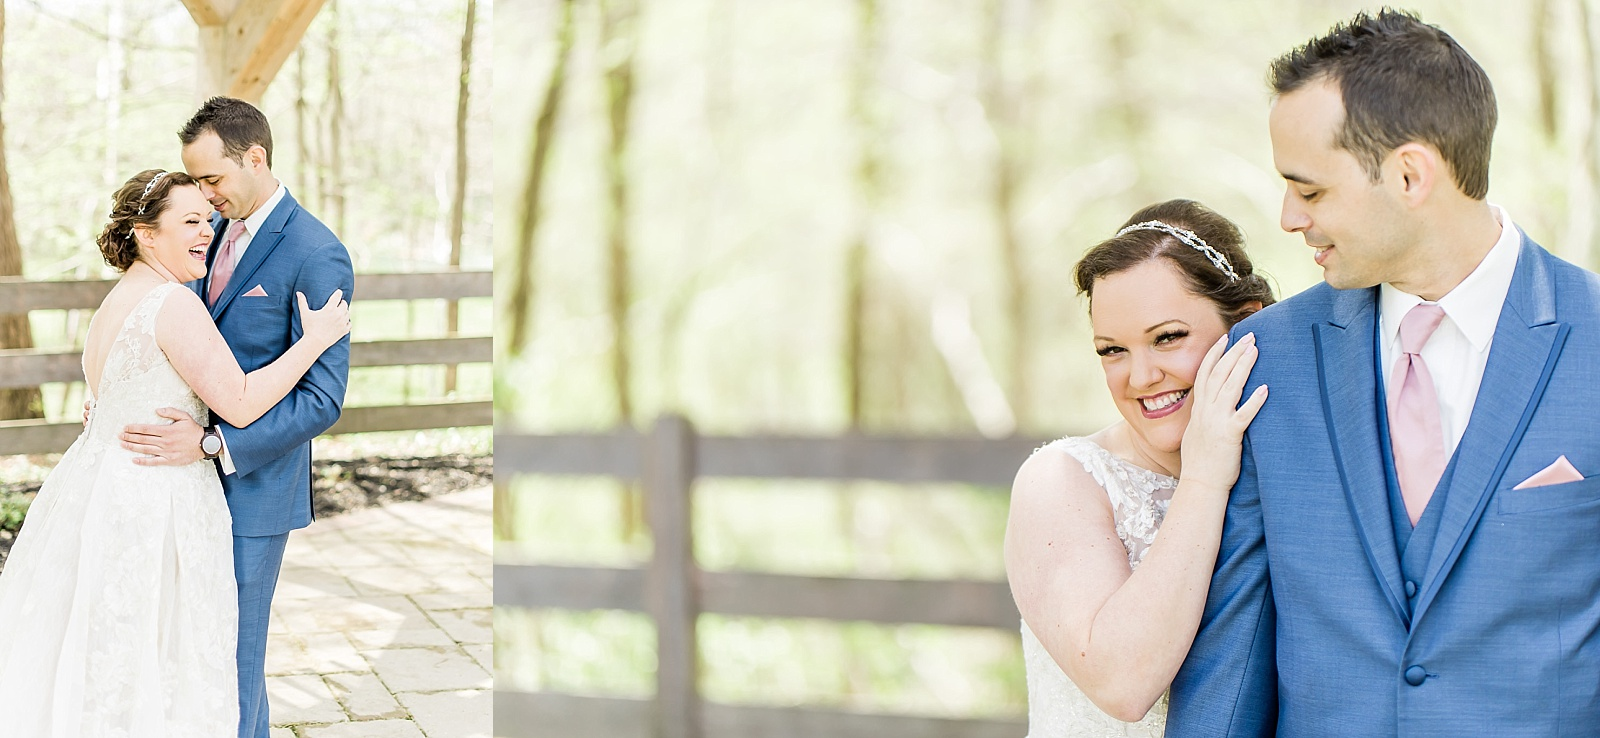 crawfordsville indiana stone creek lodge wedding rustic elegant friends theme_0124.jpg